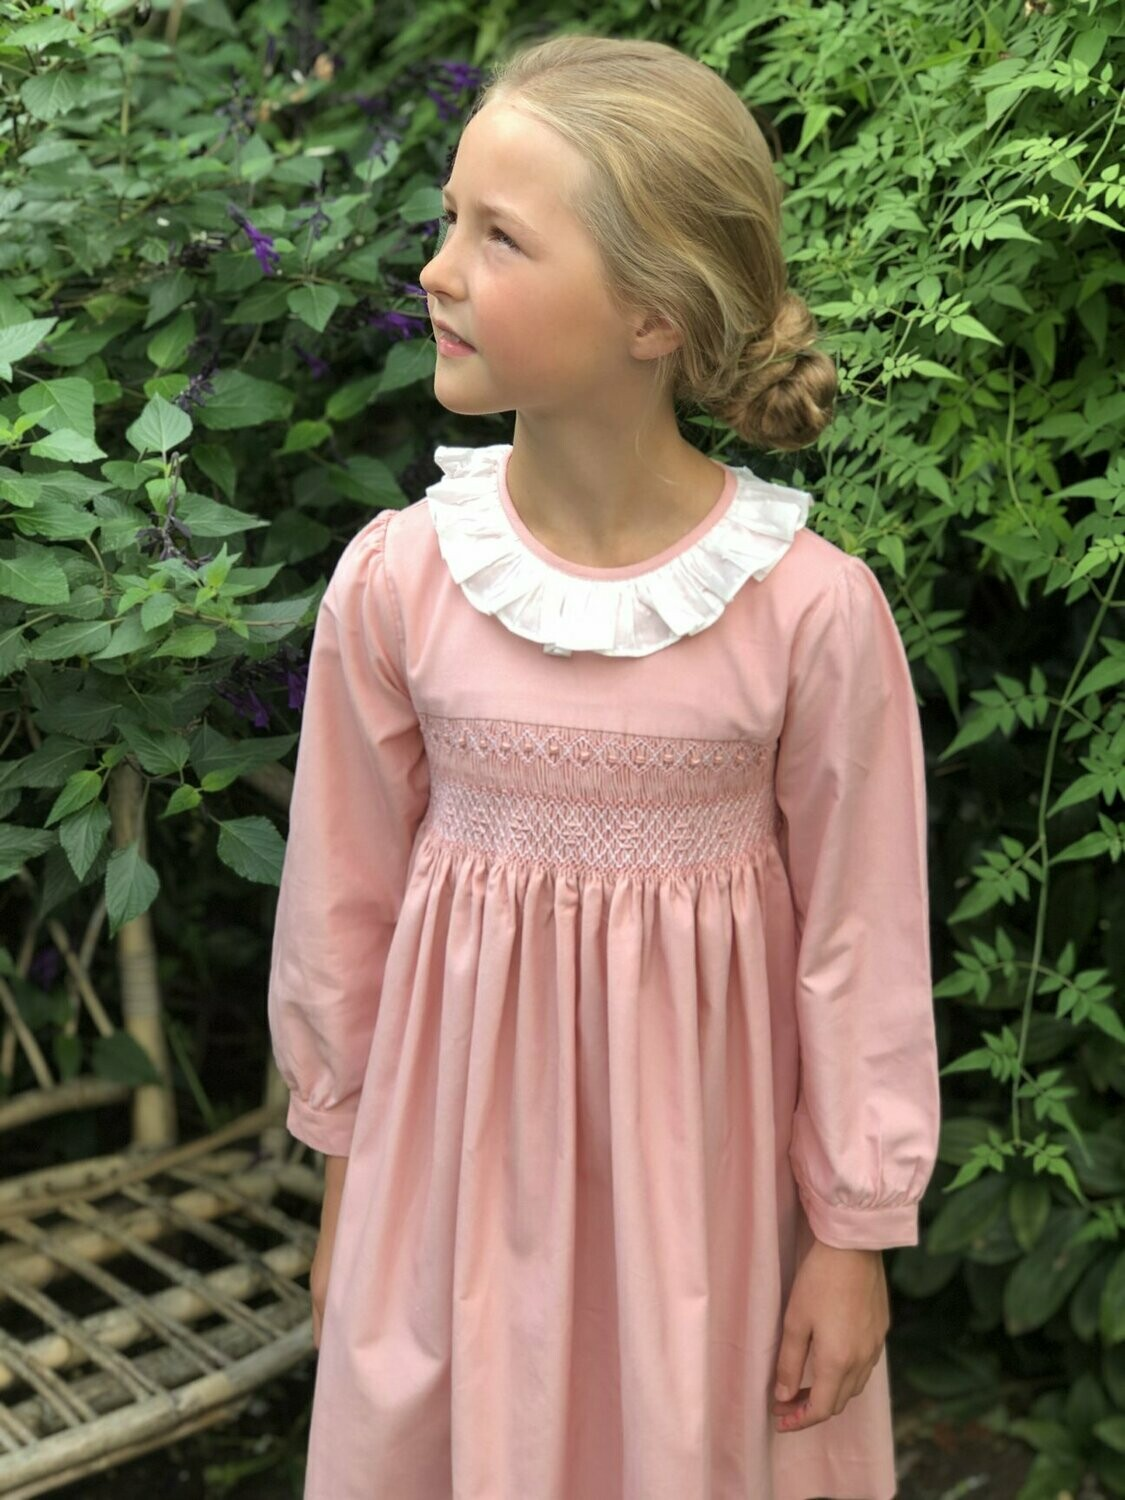 Clementine Sunset Dress - Pale Pink Cord